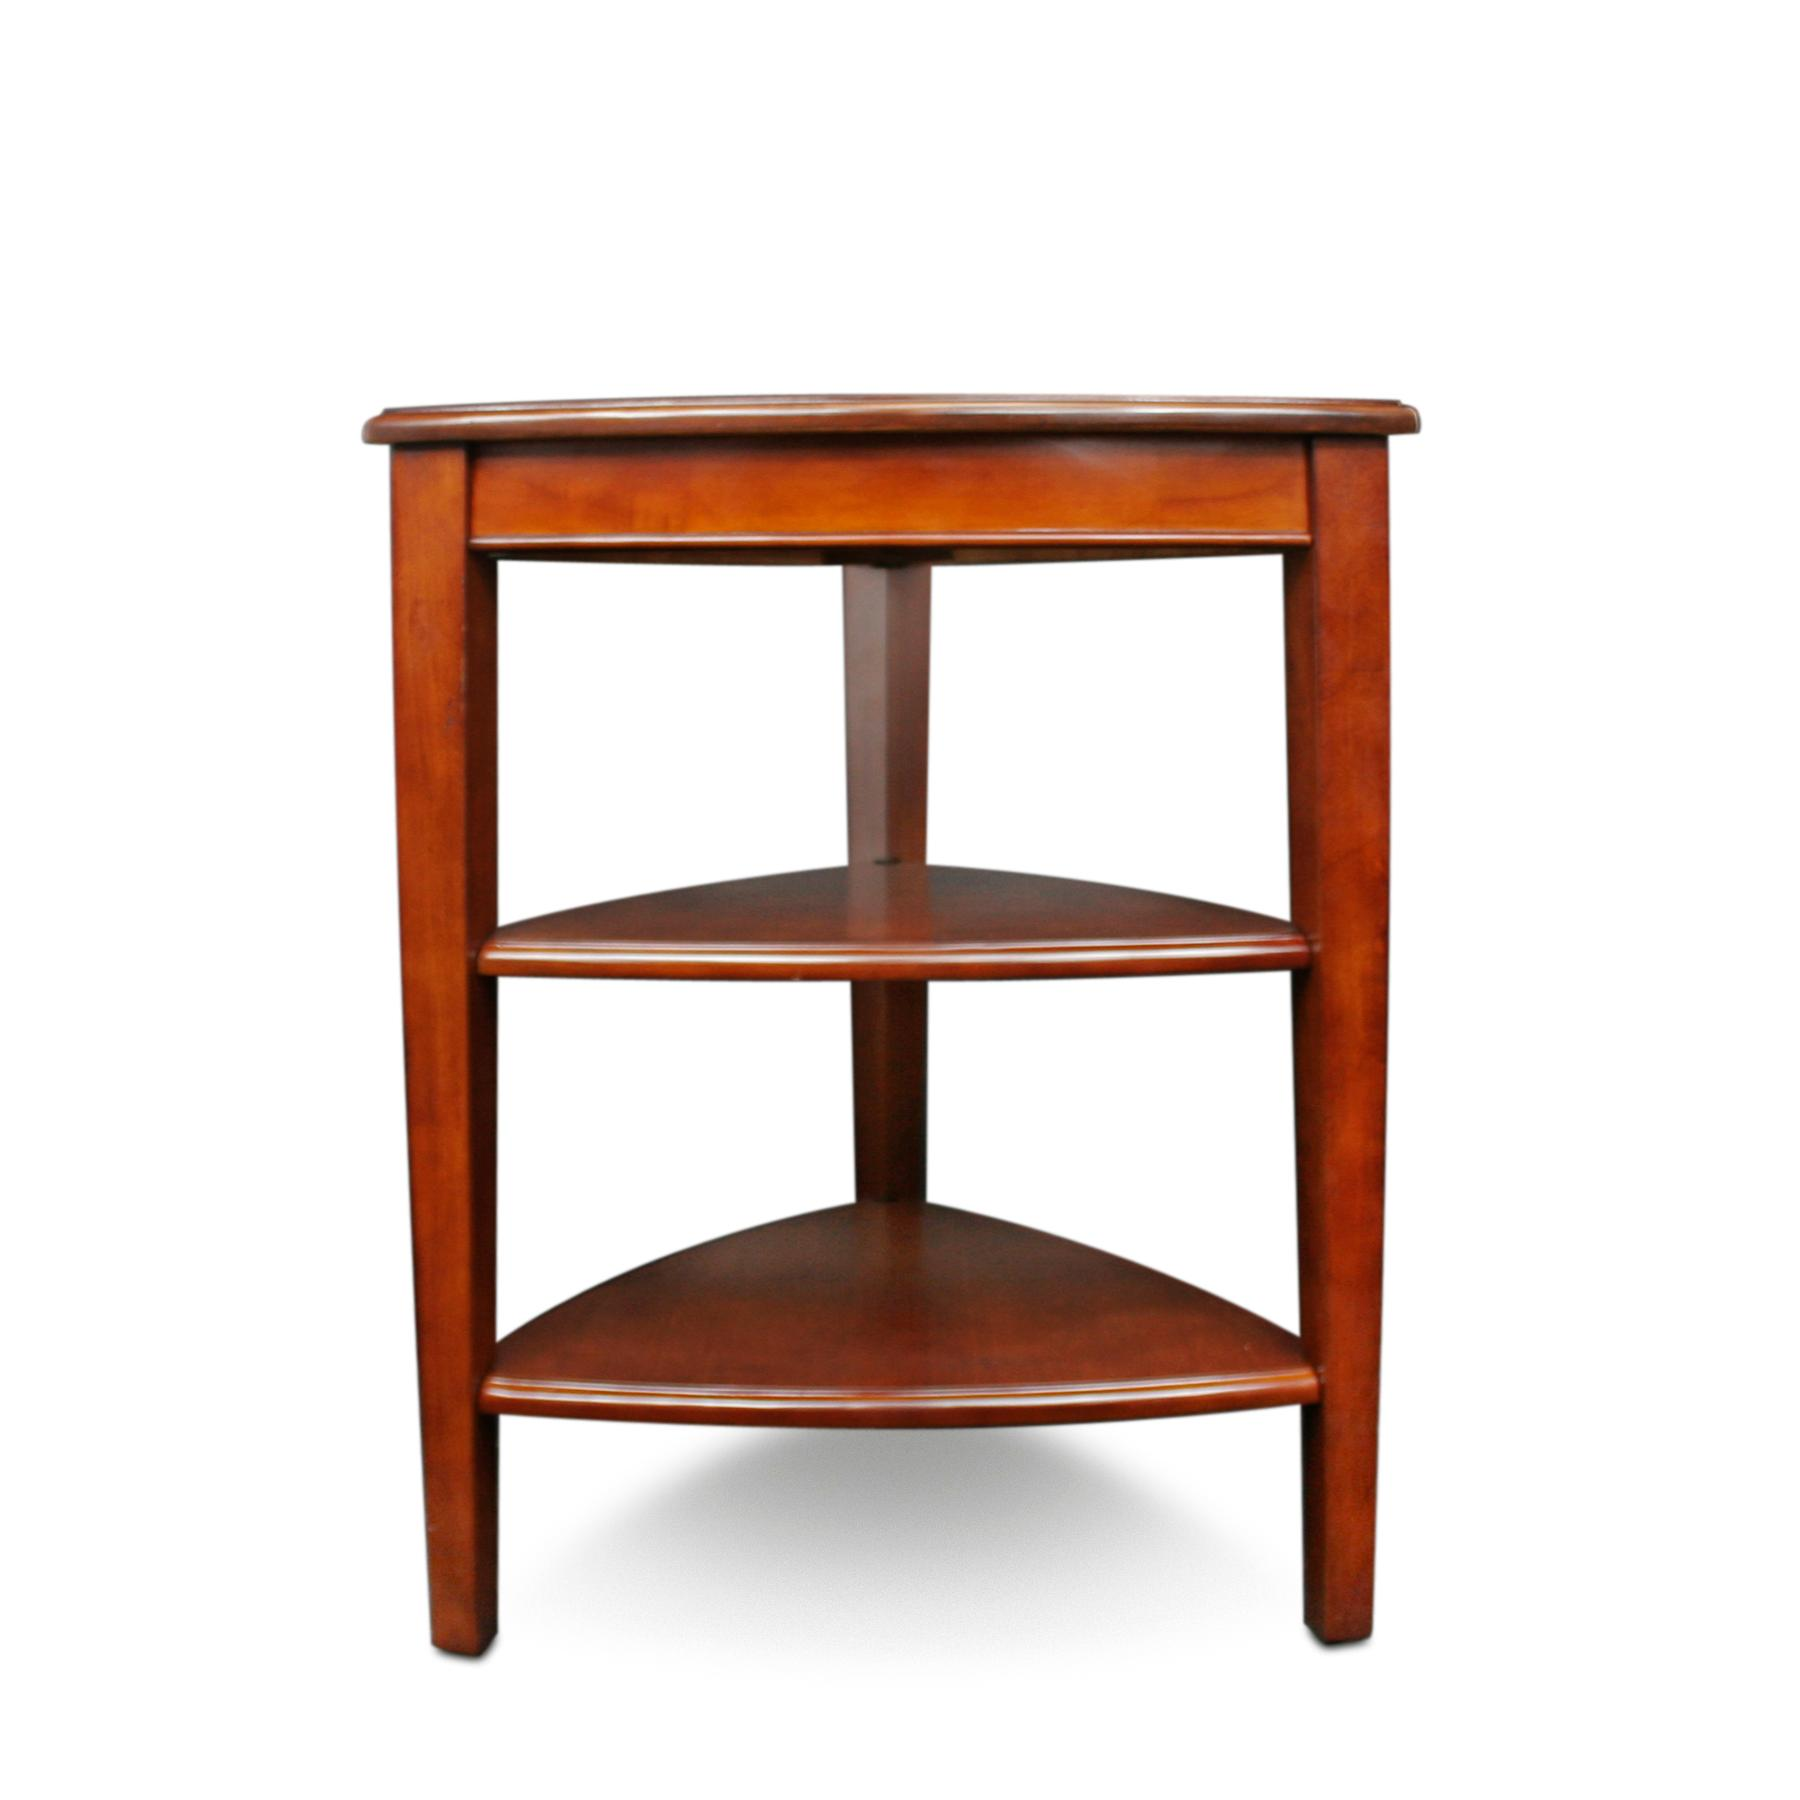 Side tables end tables living room furniture - Corner tables for living room online ...